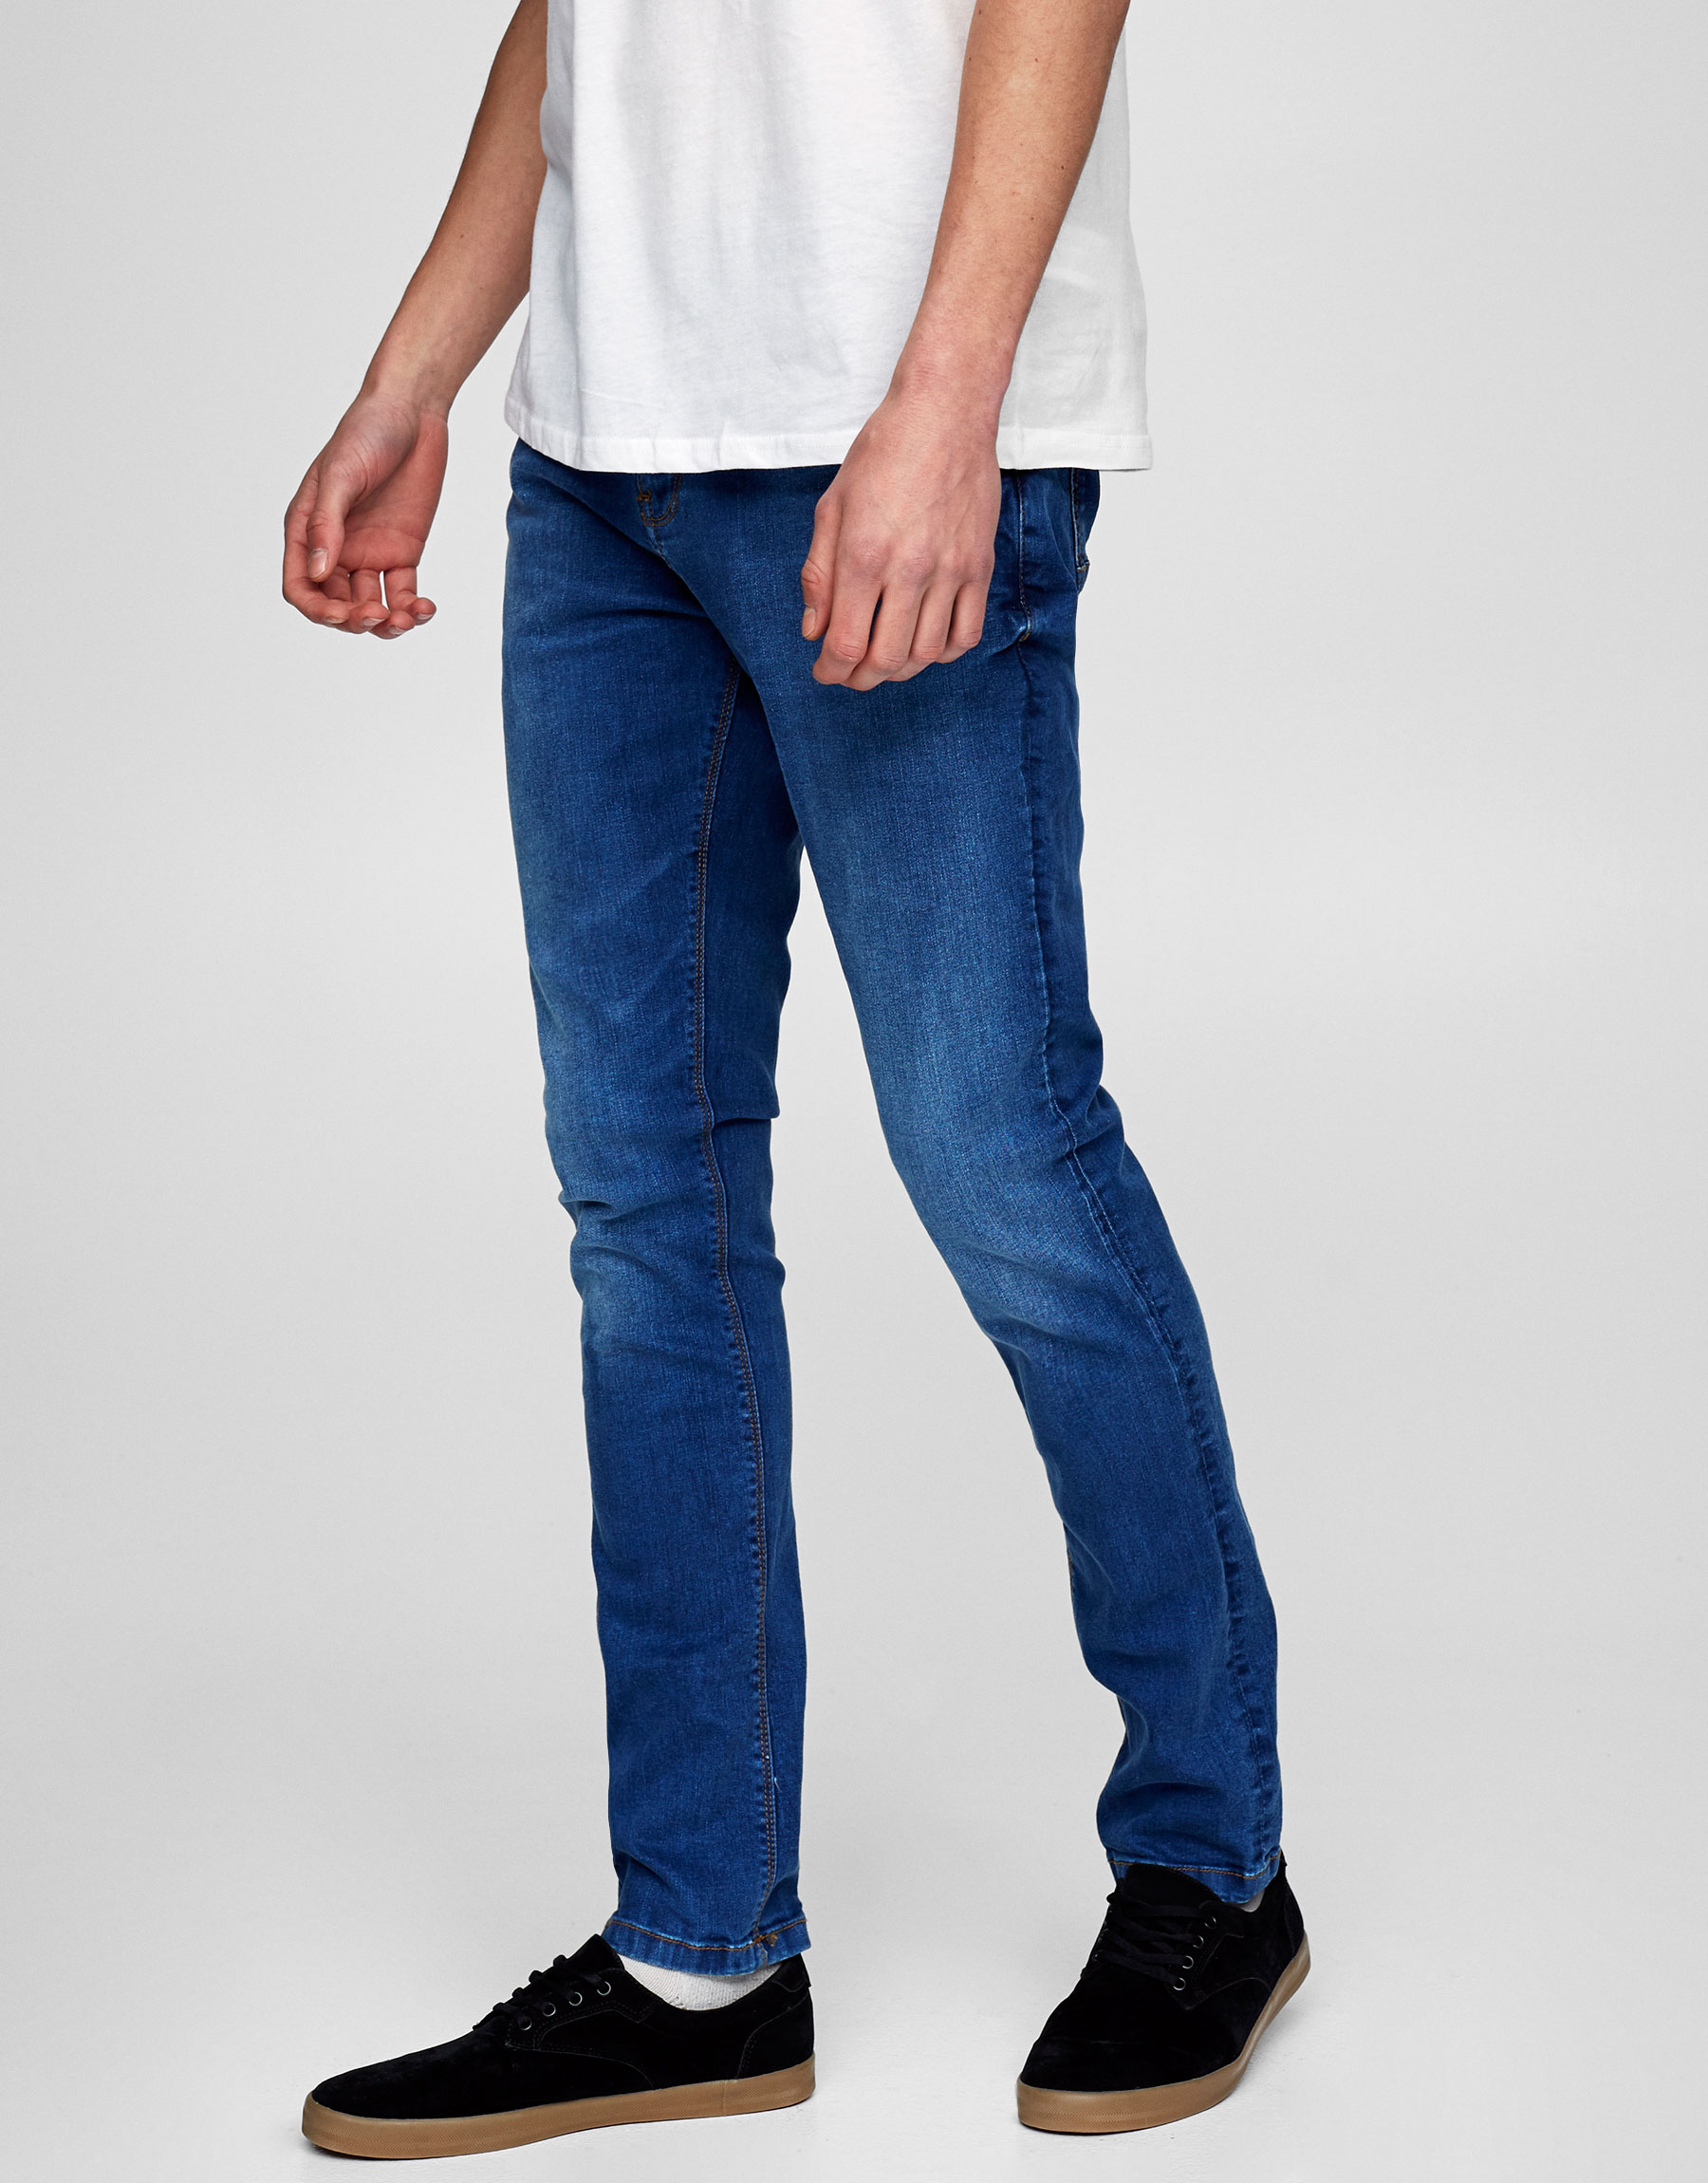 Blaue Skinny-Fit-Jeans (Marc Márquez Kollektion)